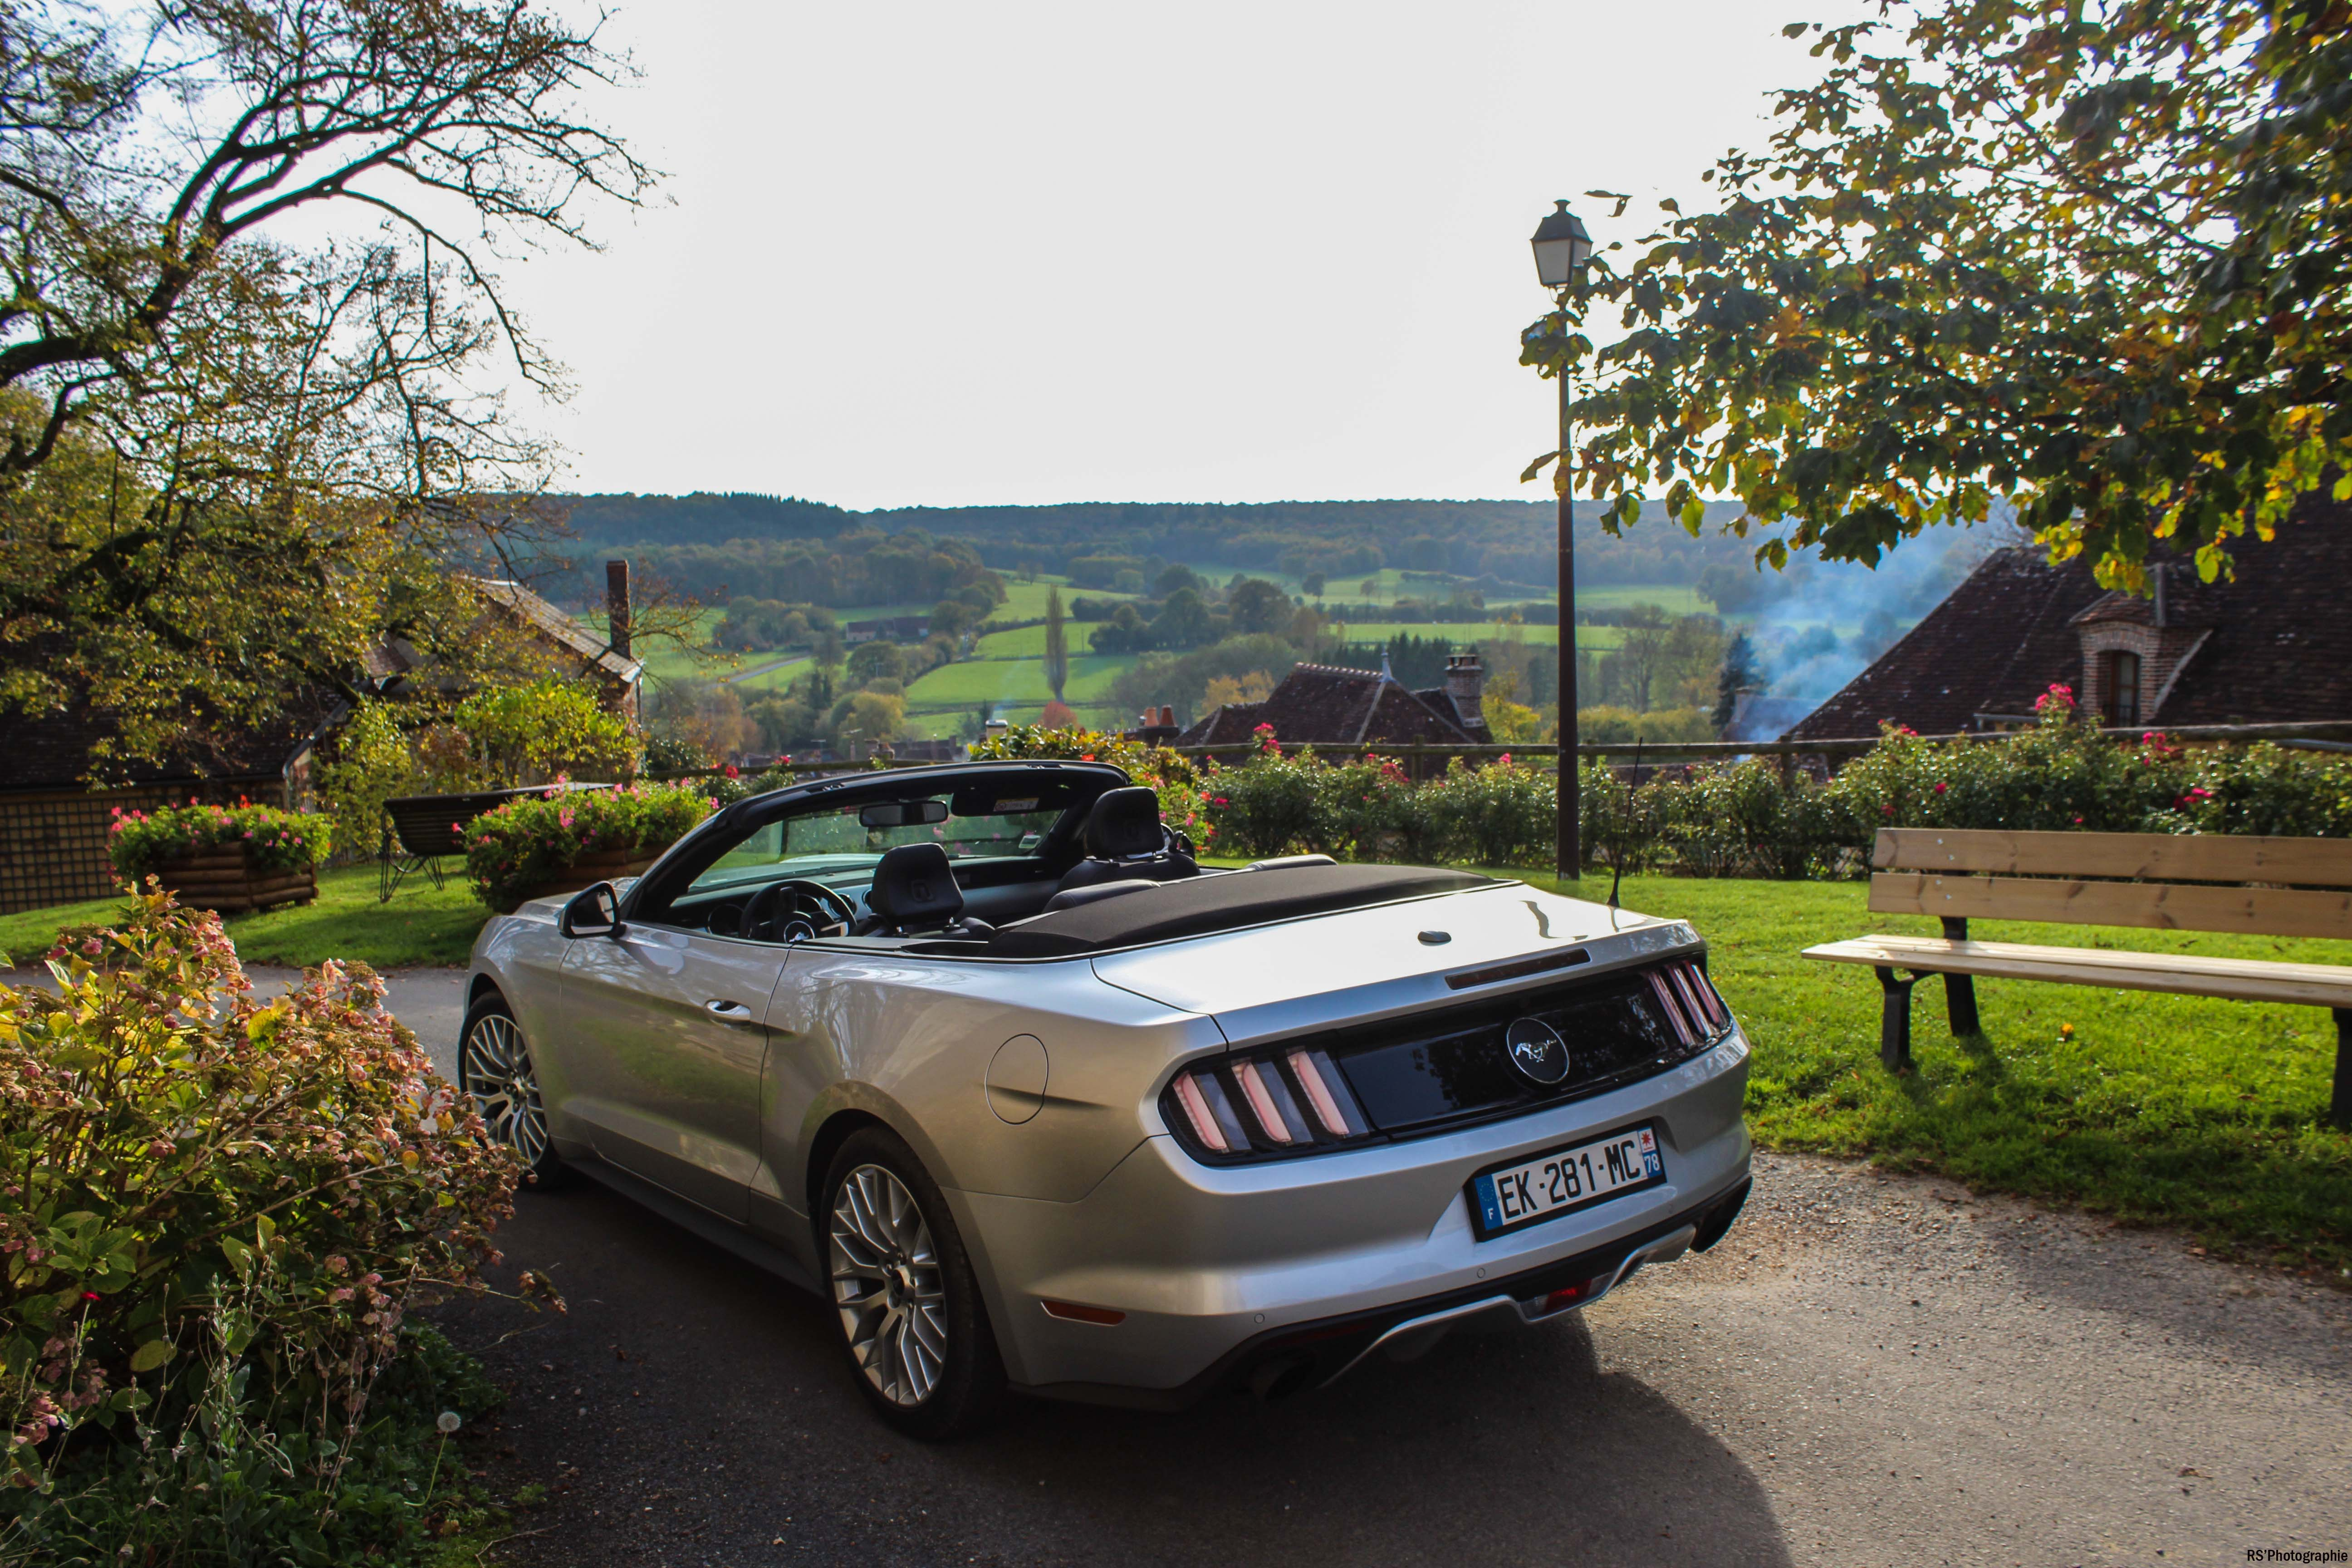 fordmustangeconvertible74-ford-mustang-convertible-ecoboost-arrière-rear-Arnaud Demasier-RSPhotographie